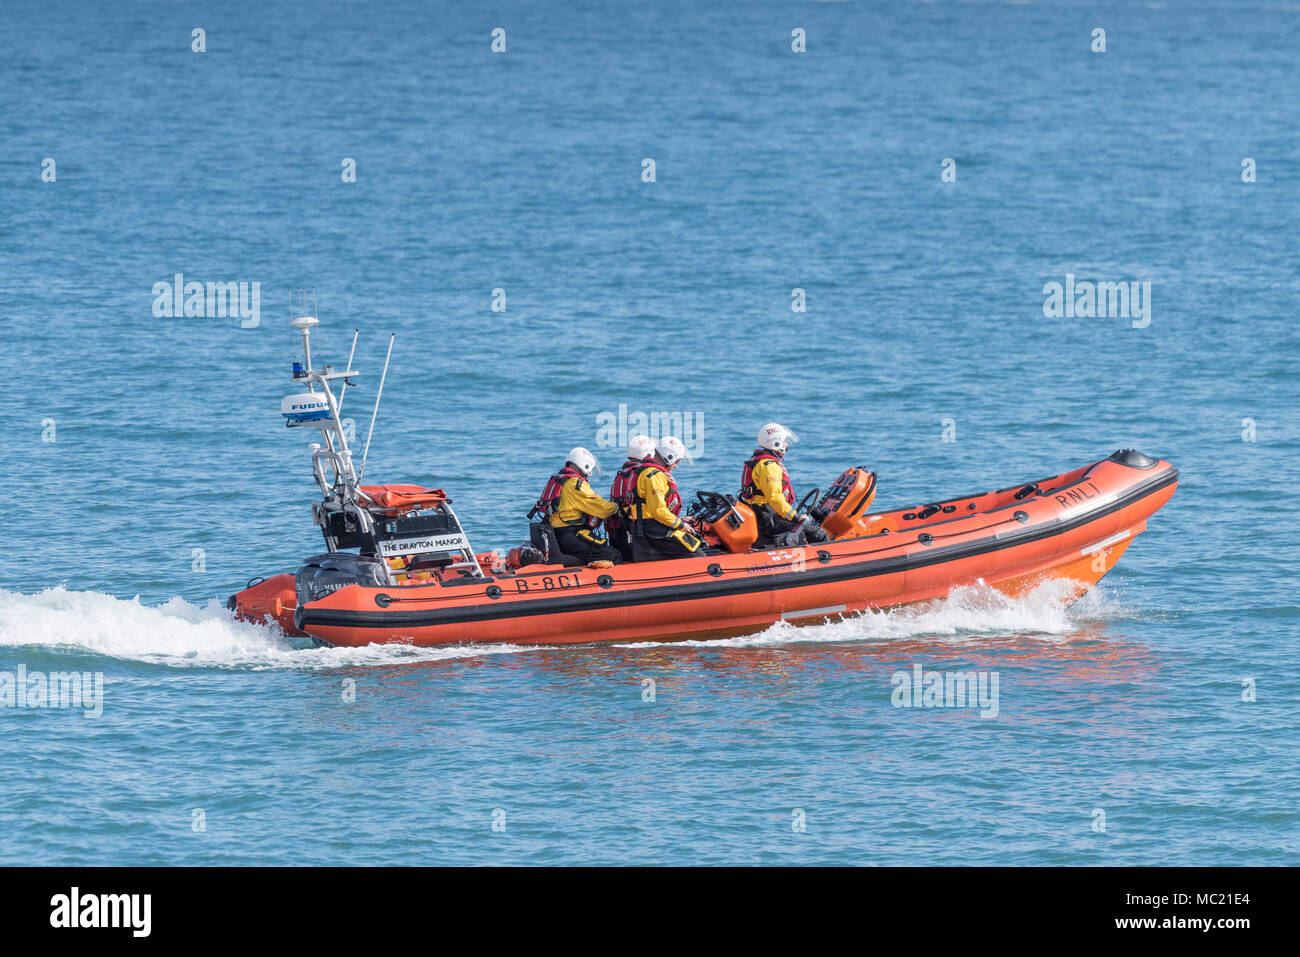 The Newquay RNLI B Class Atlantic 85 inshore craft participating in a GMICE (Good Medicine in Challenging Environments) major incident exercise. - Stock Image